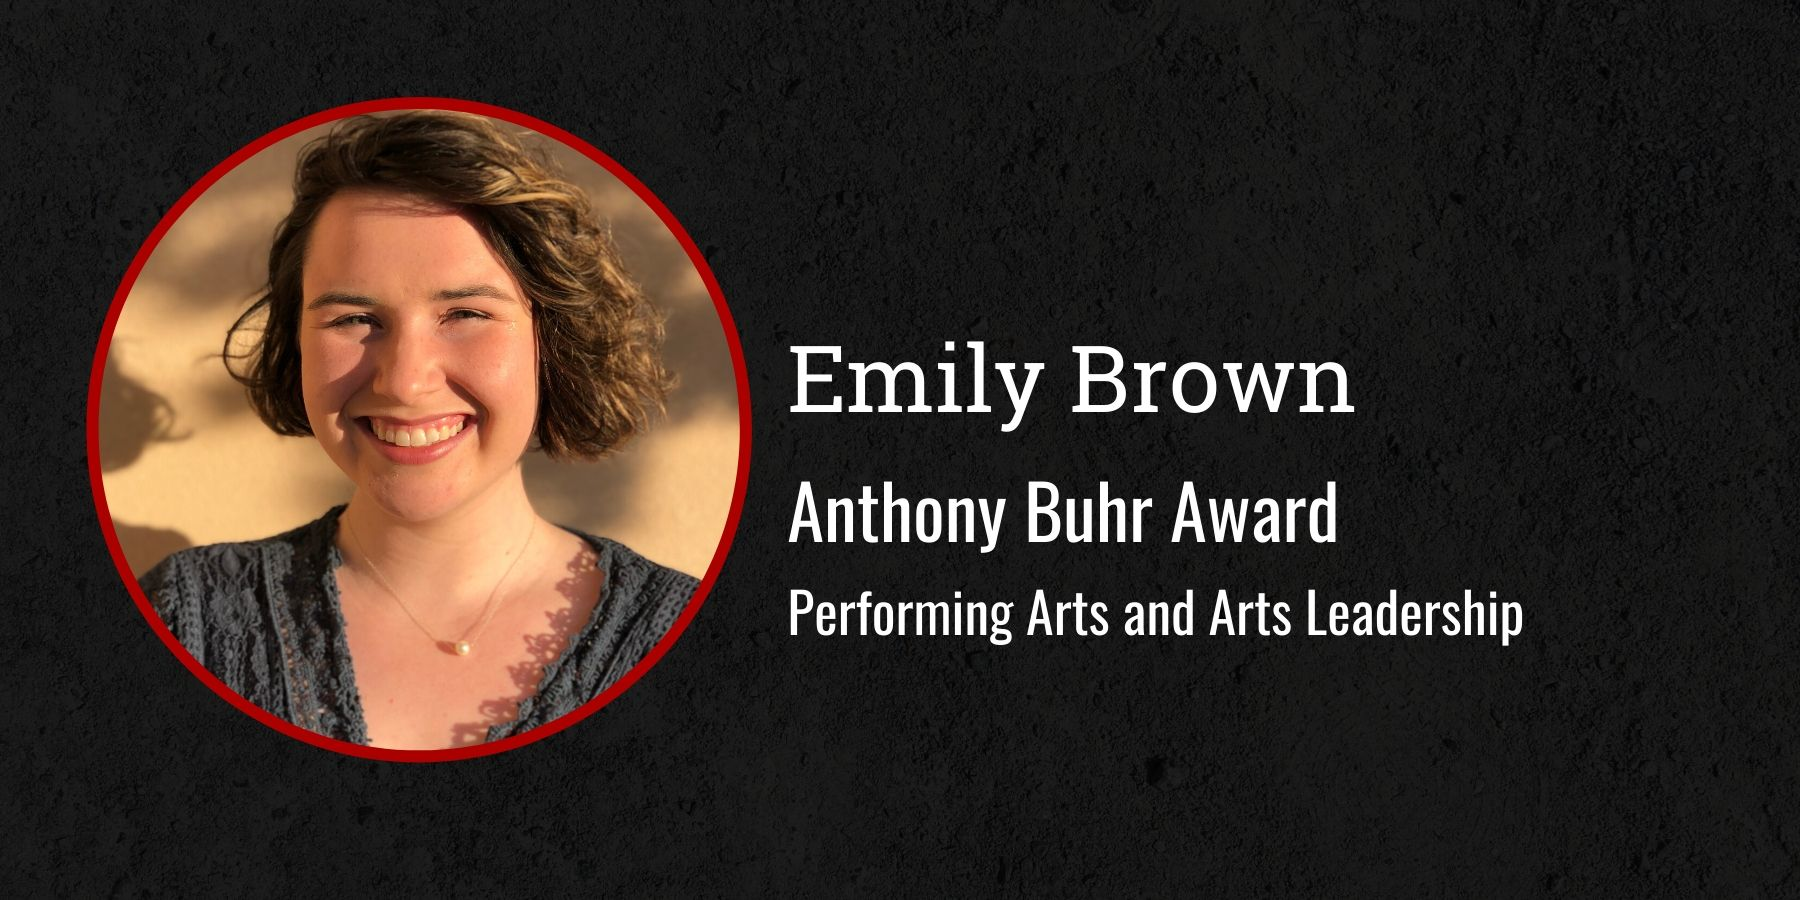 Photo of Emily Brown and text Anthony Buhr Award, Performing arts and Arts leadership